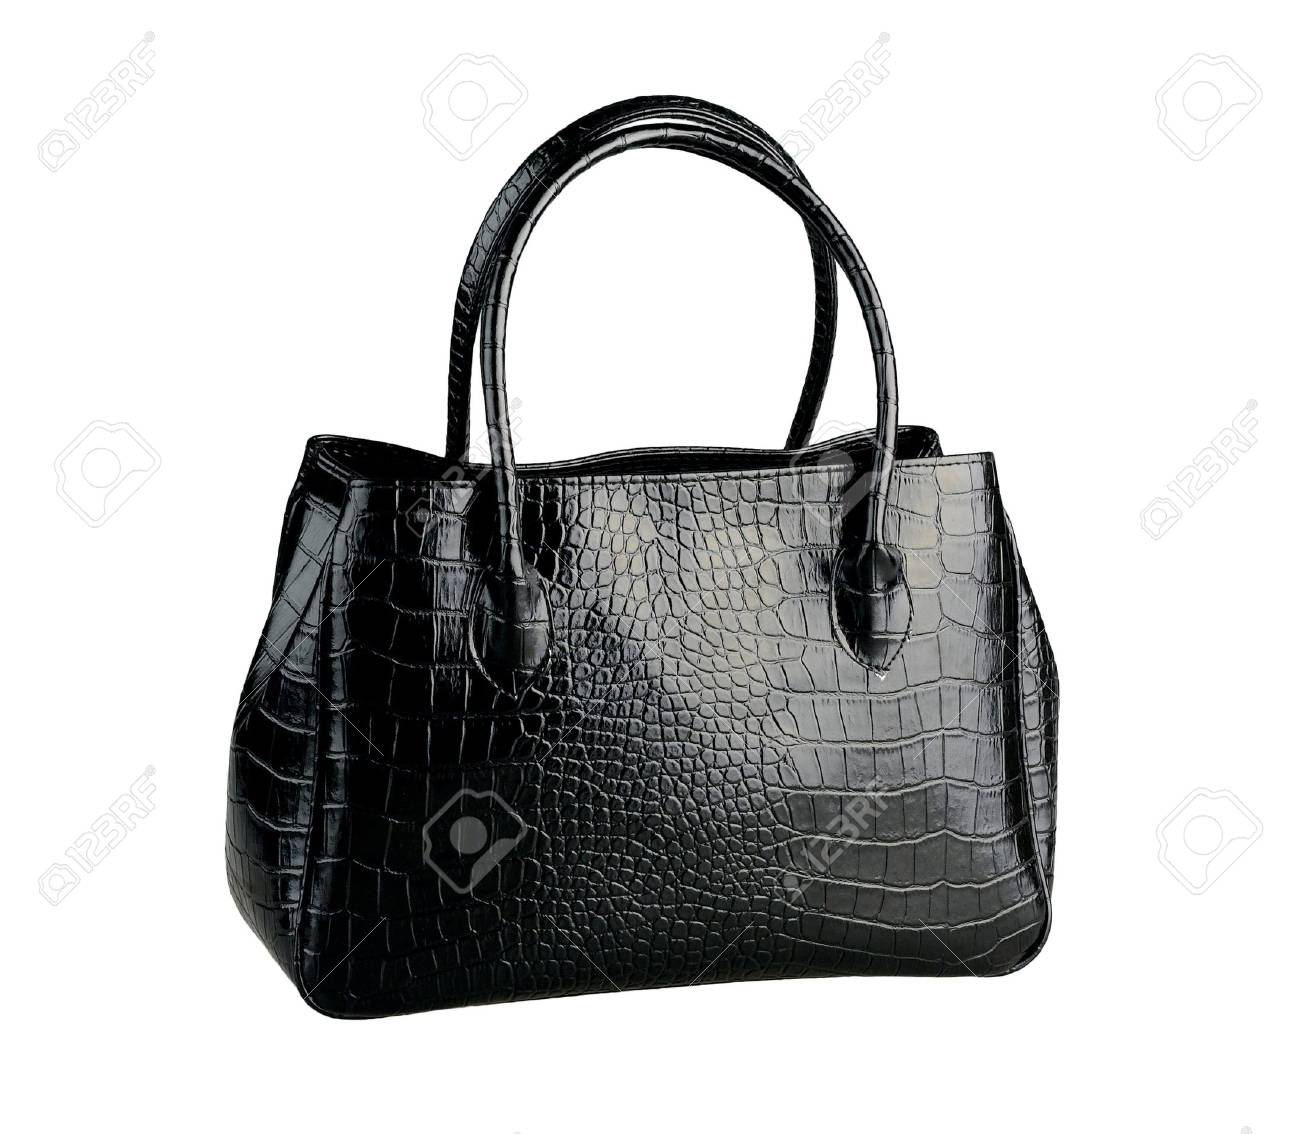 ca033d35 Beautiful black leather handbag made from crocodile leather isolated Stock  Photo - 18208493